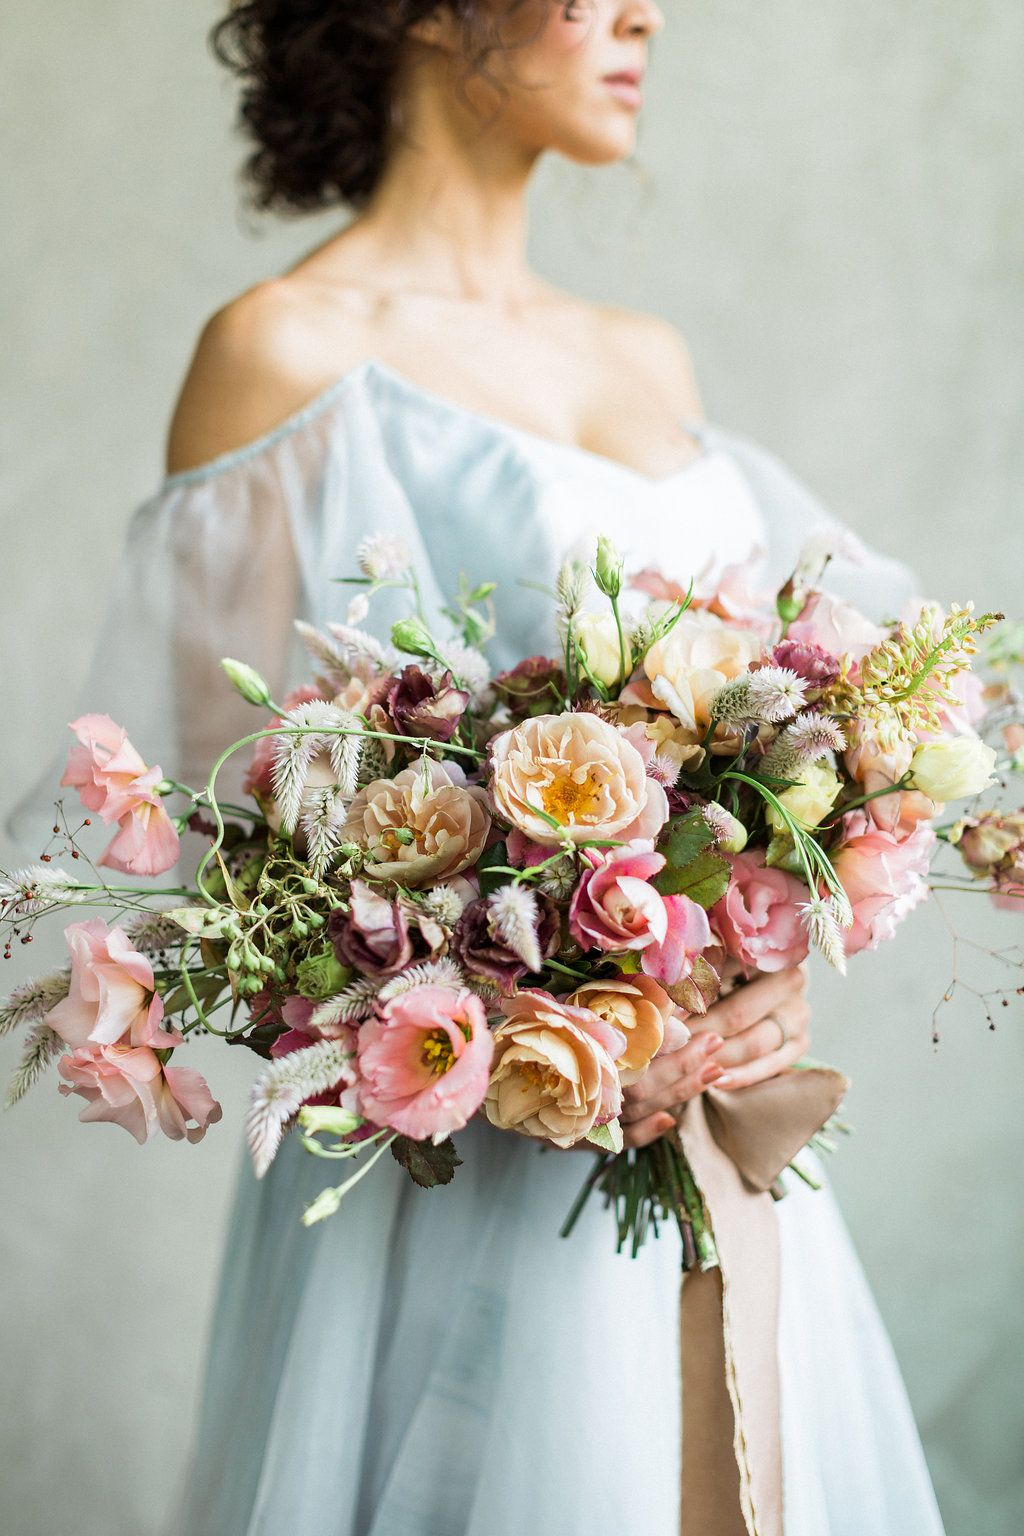 cloudy day wedding inspiration with a hand painted bridal gown rh pinterest com